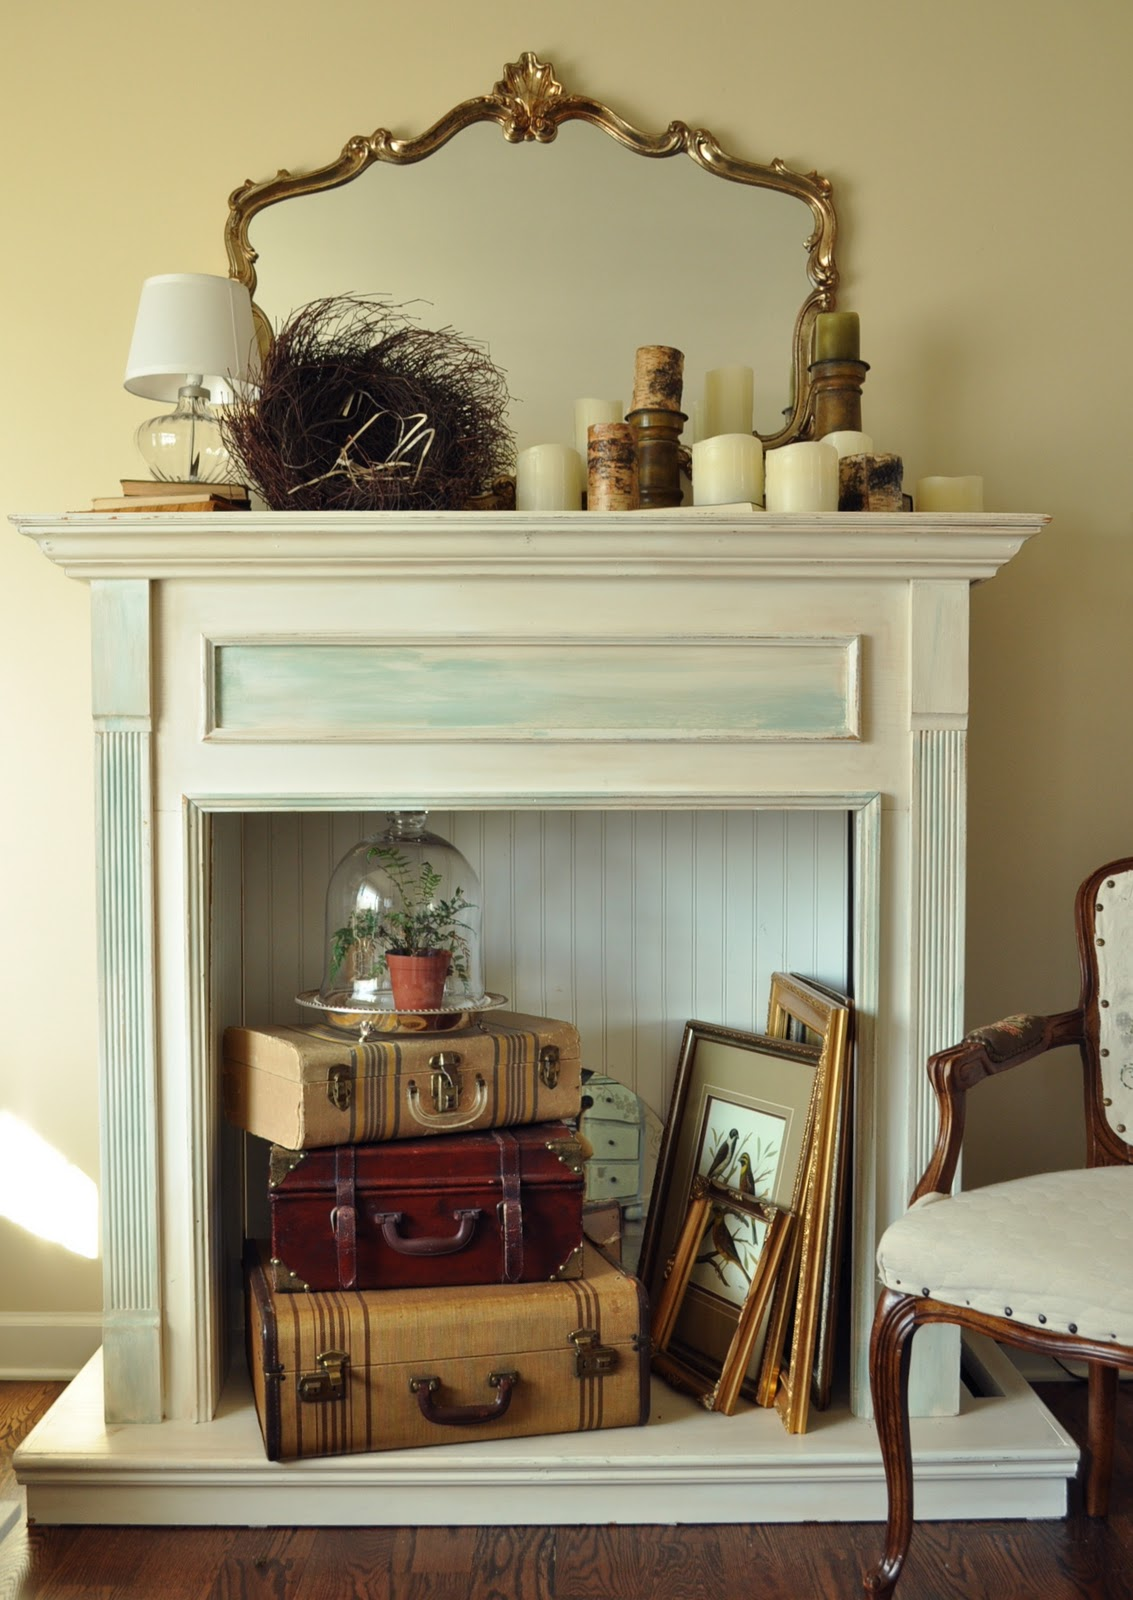 Adding the finishing touch with a faux fireplace mantel ...